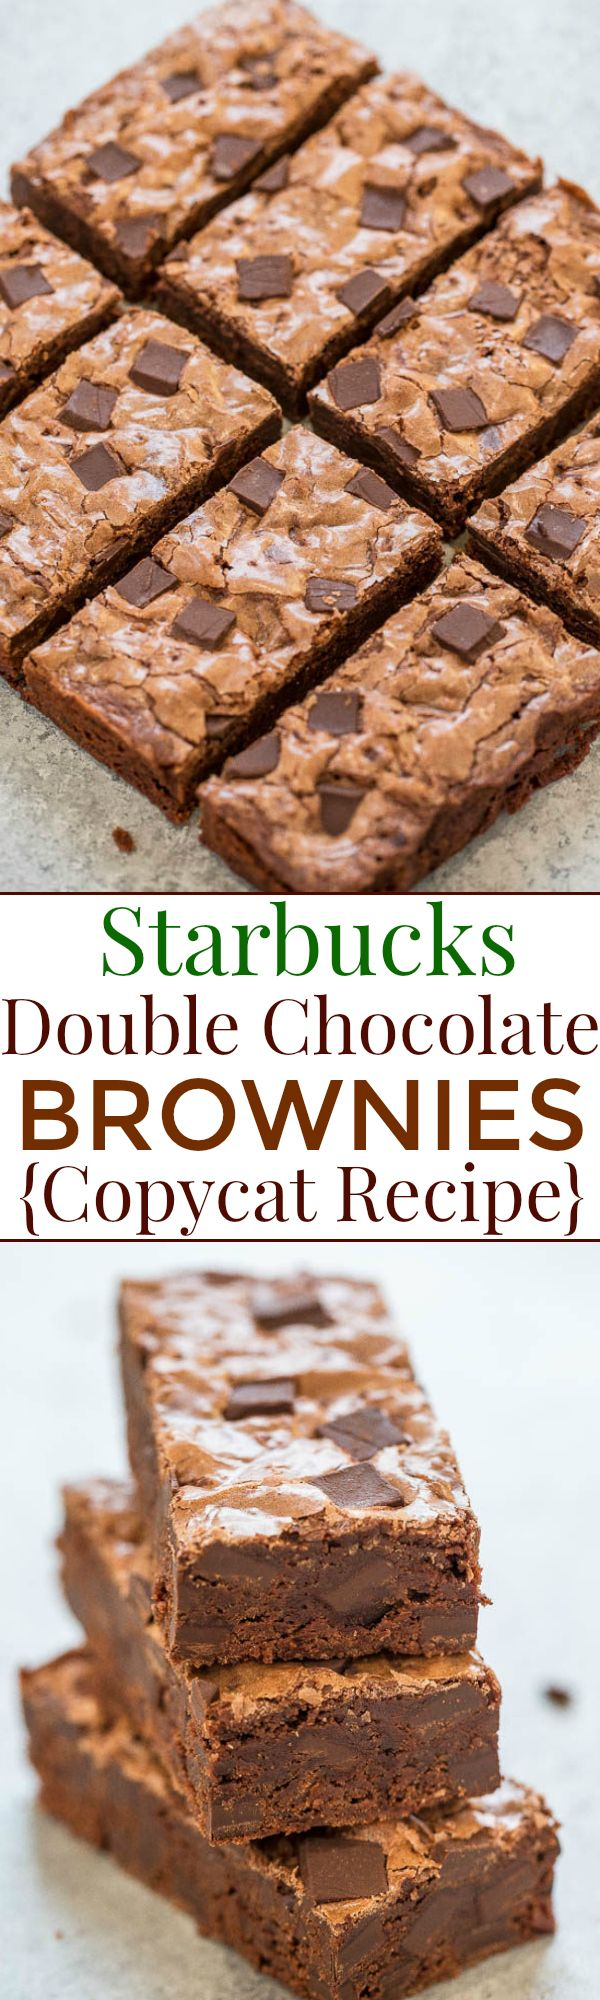 Starbucks Double Chocolate Brownies {Copycat Recipe} – Rich, fudgy, chewy, easy, no mixer recipe that tastes just like Starbucks!!